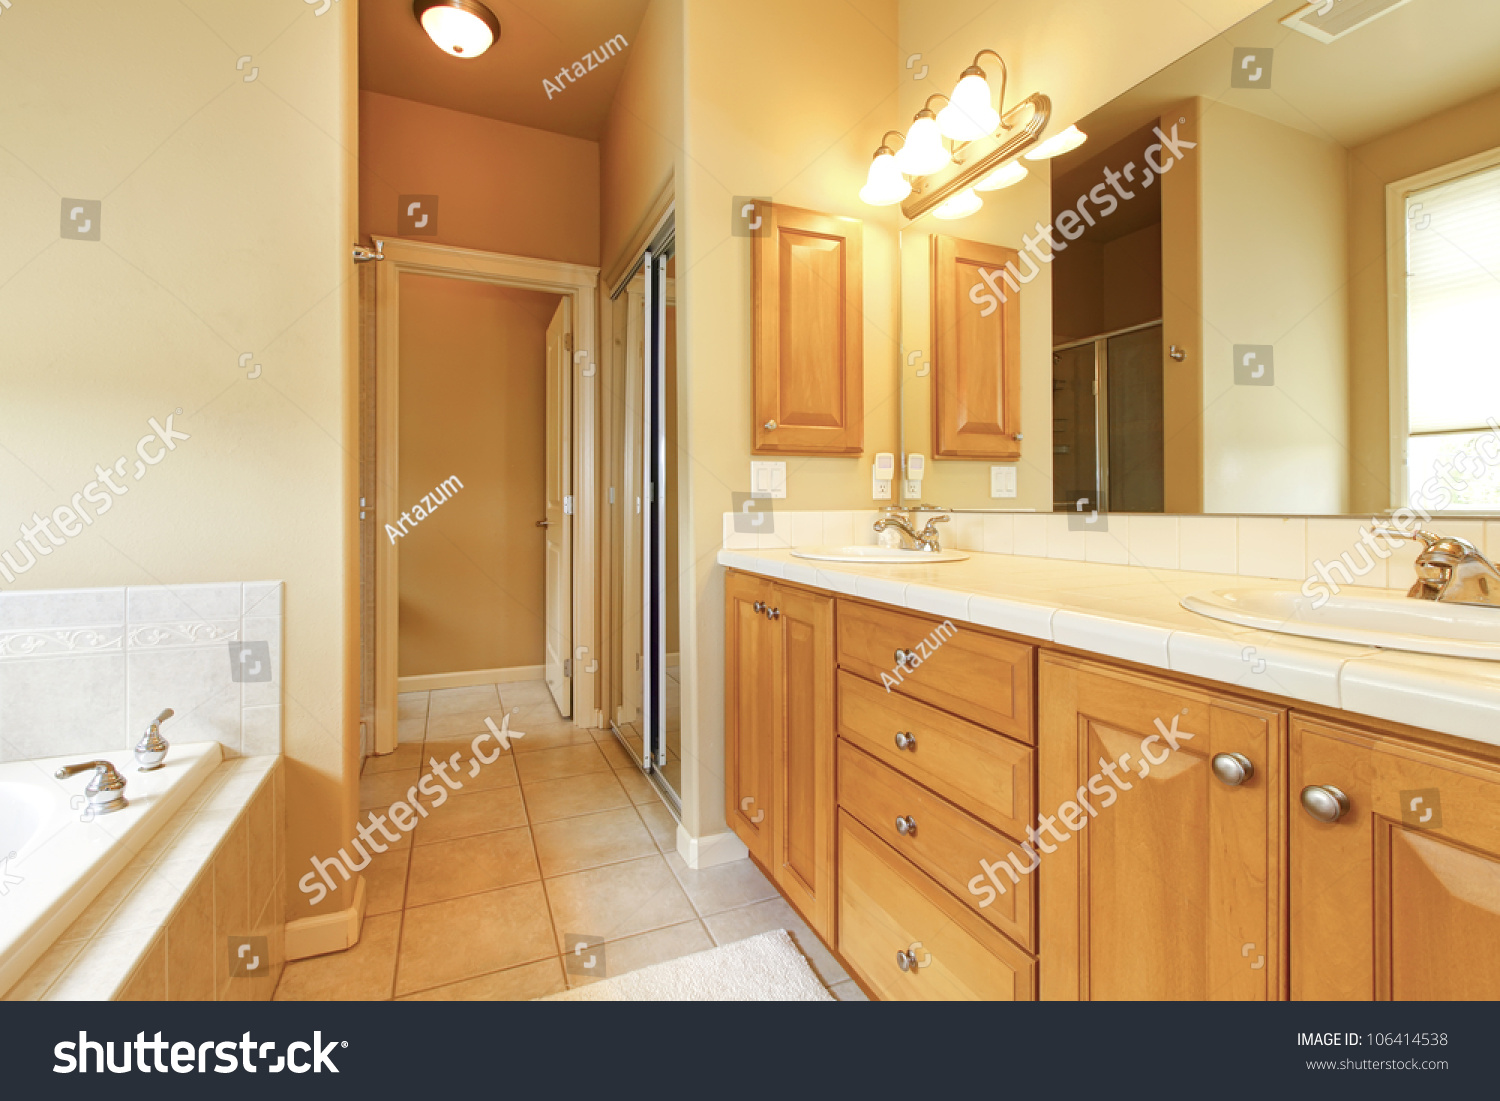 Bathroom Interior With Beige Tiles And Wood Cabinets